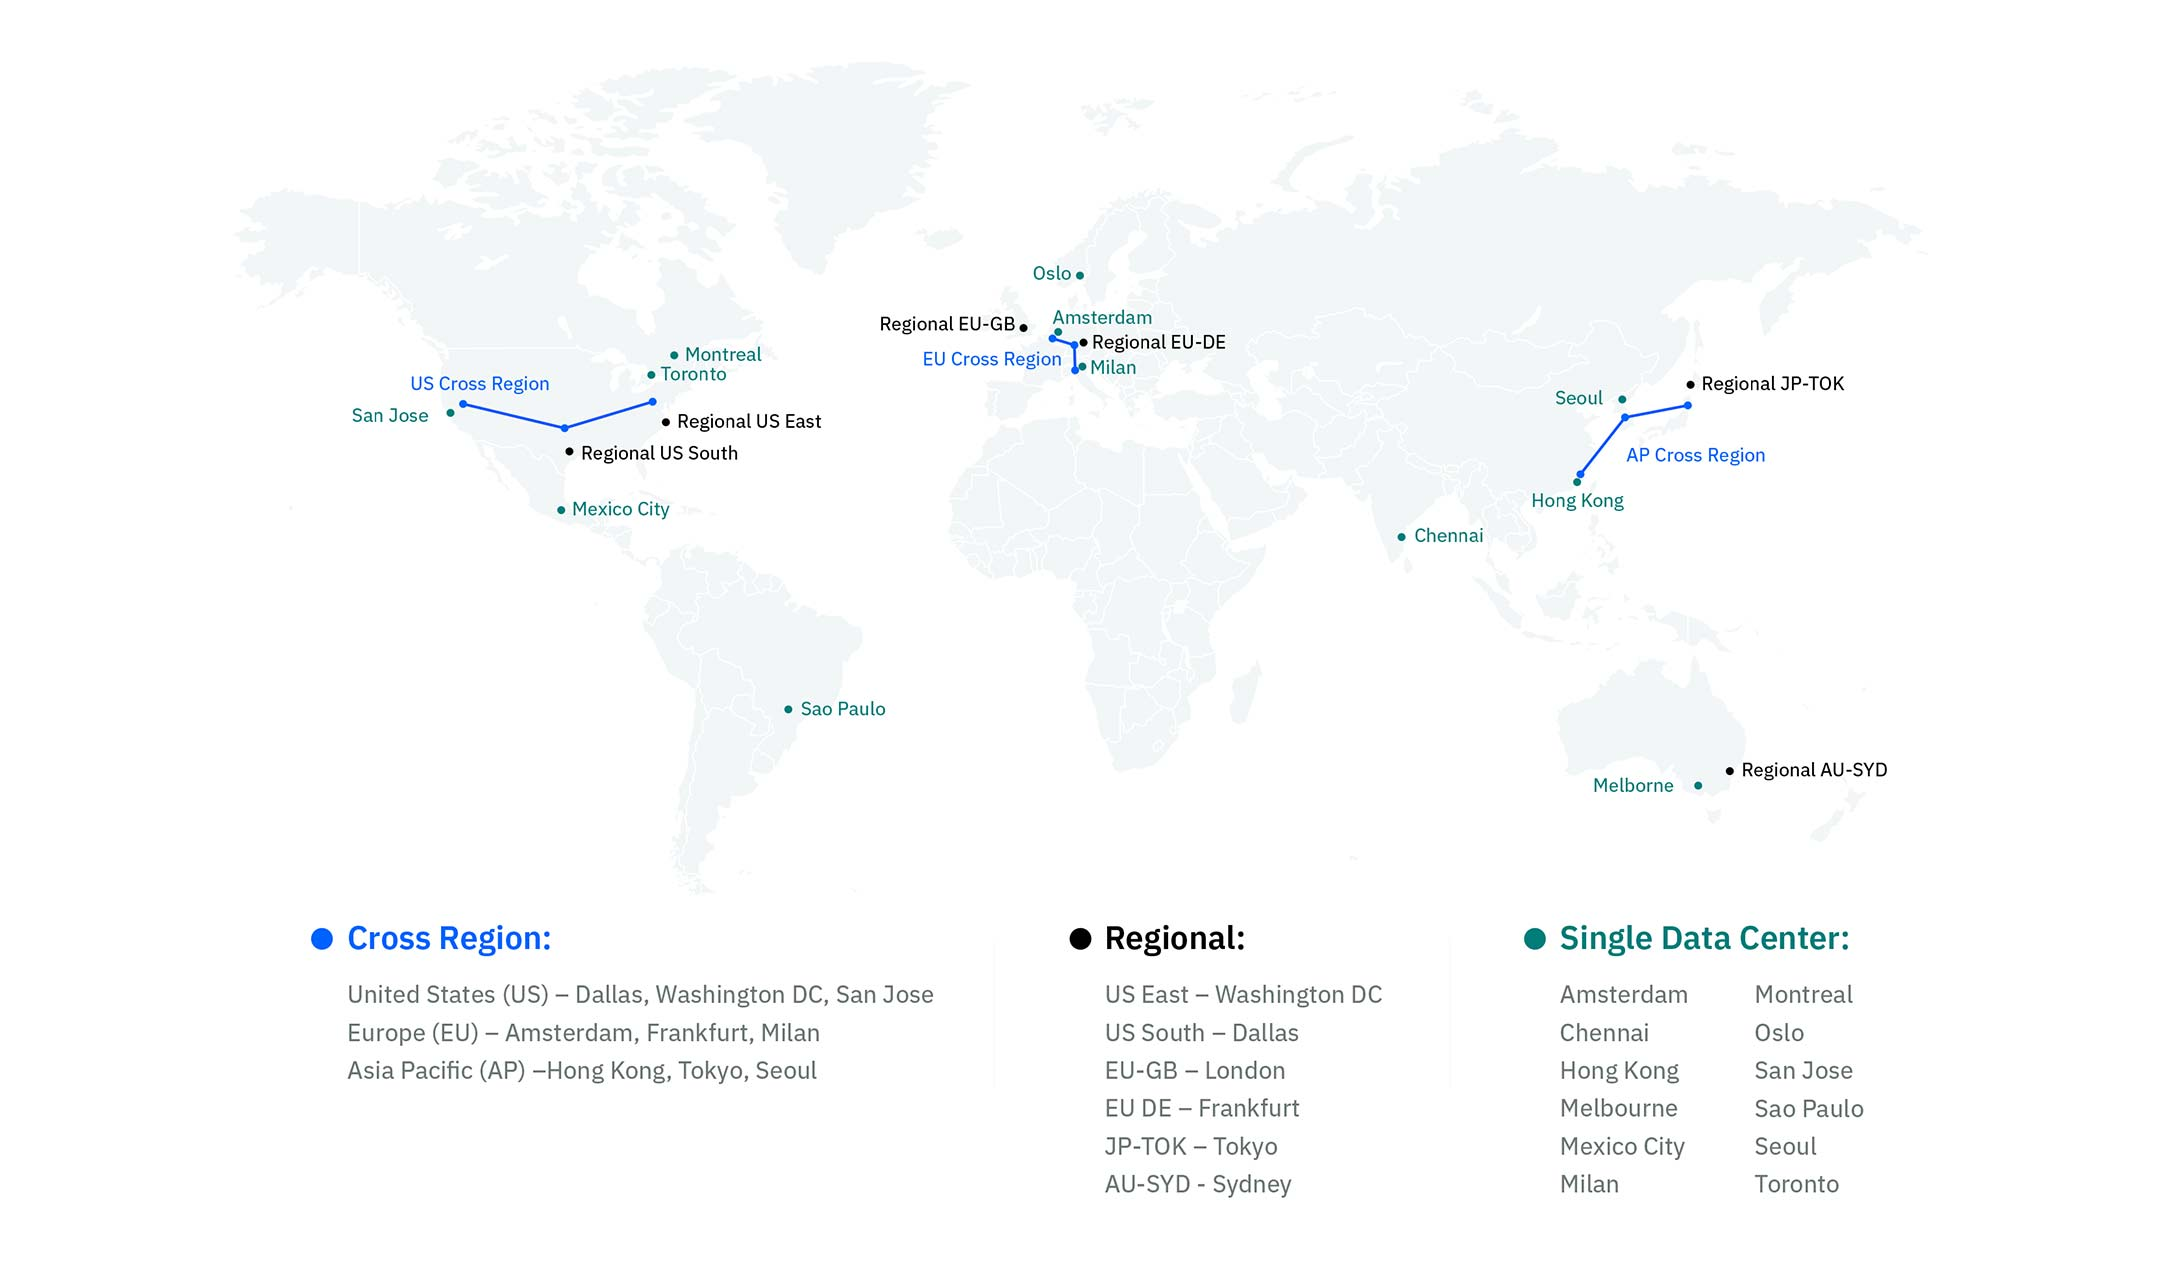 Global map illustrating the cross region, regional and single data center resiliency choices